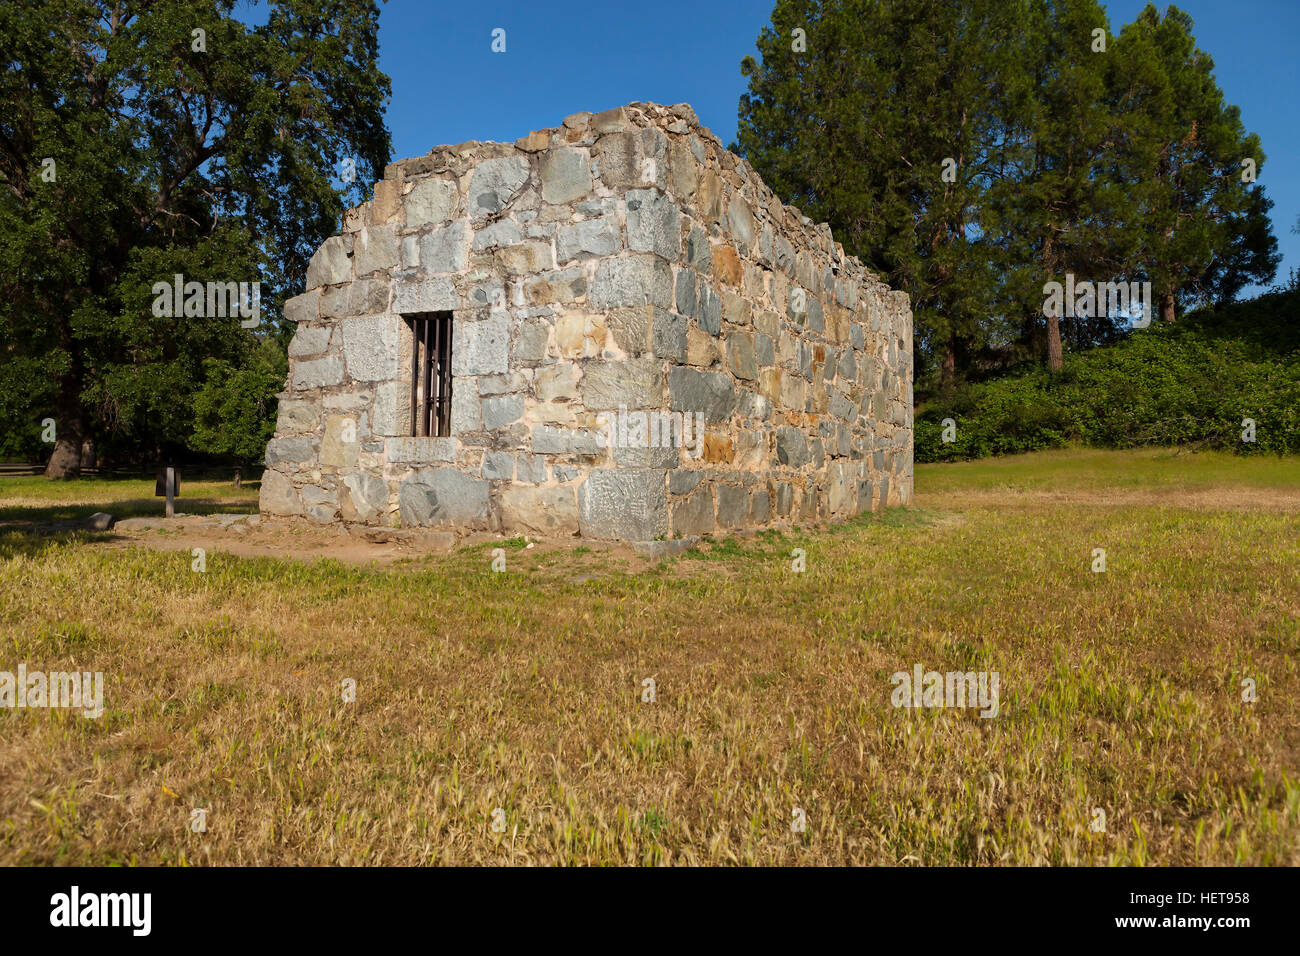 Old Stone Jail House in Coloma, California - Stock Image